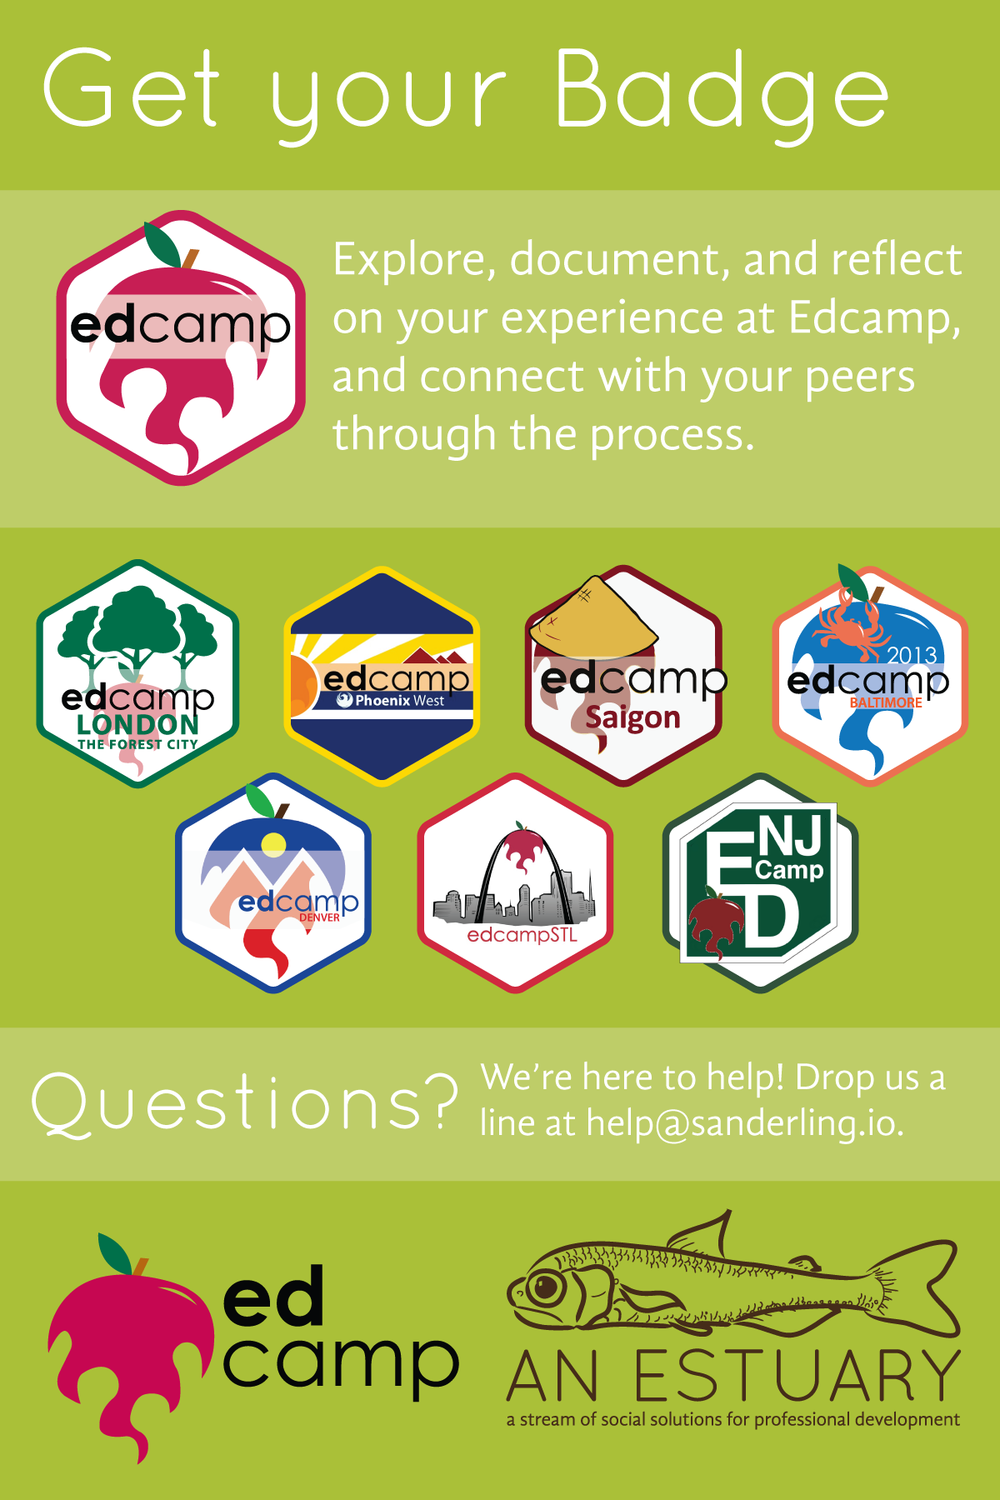 edcamp_how_to-02.png